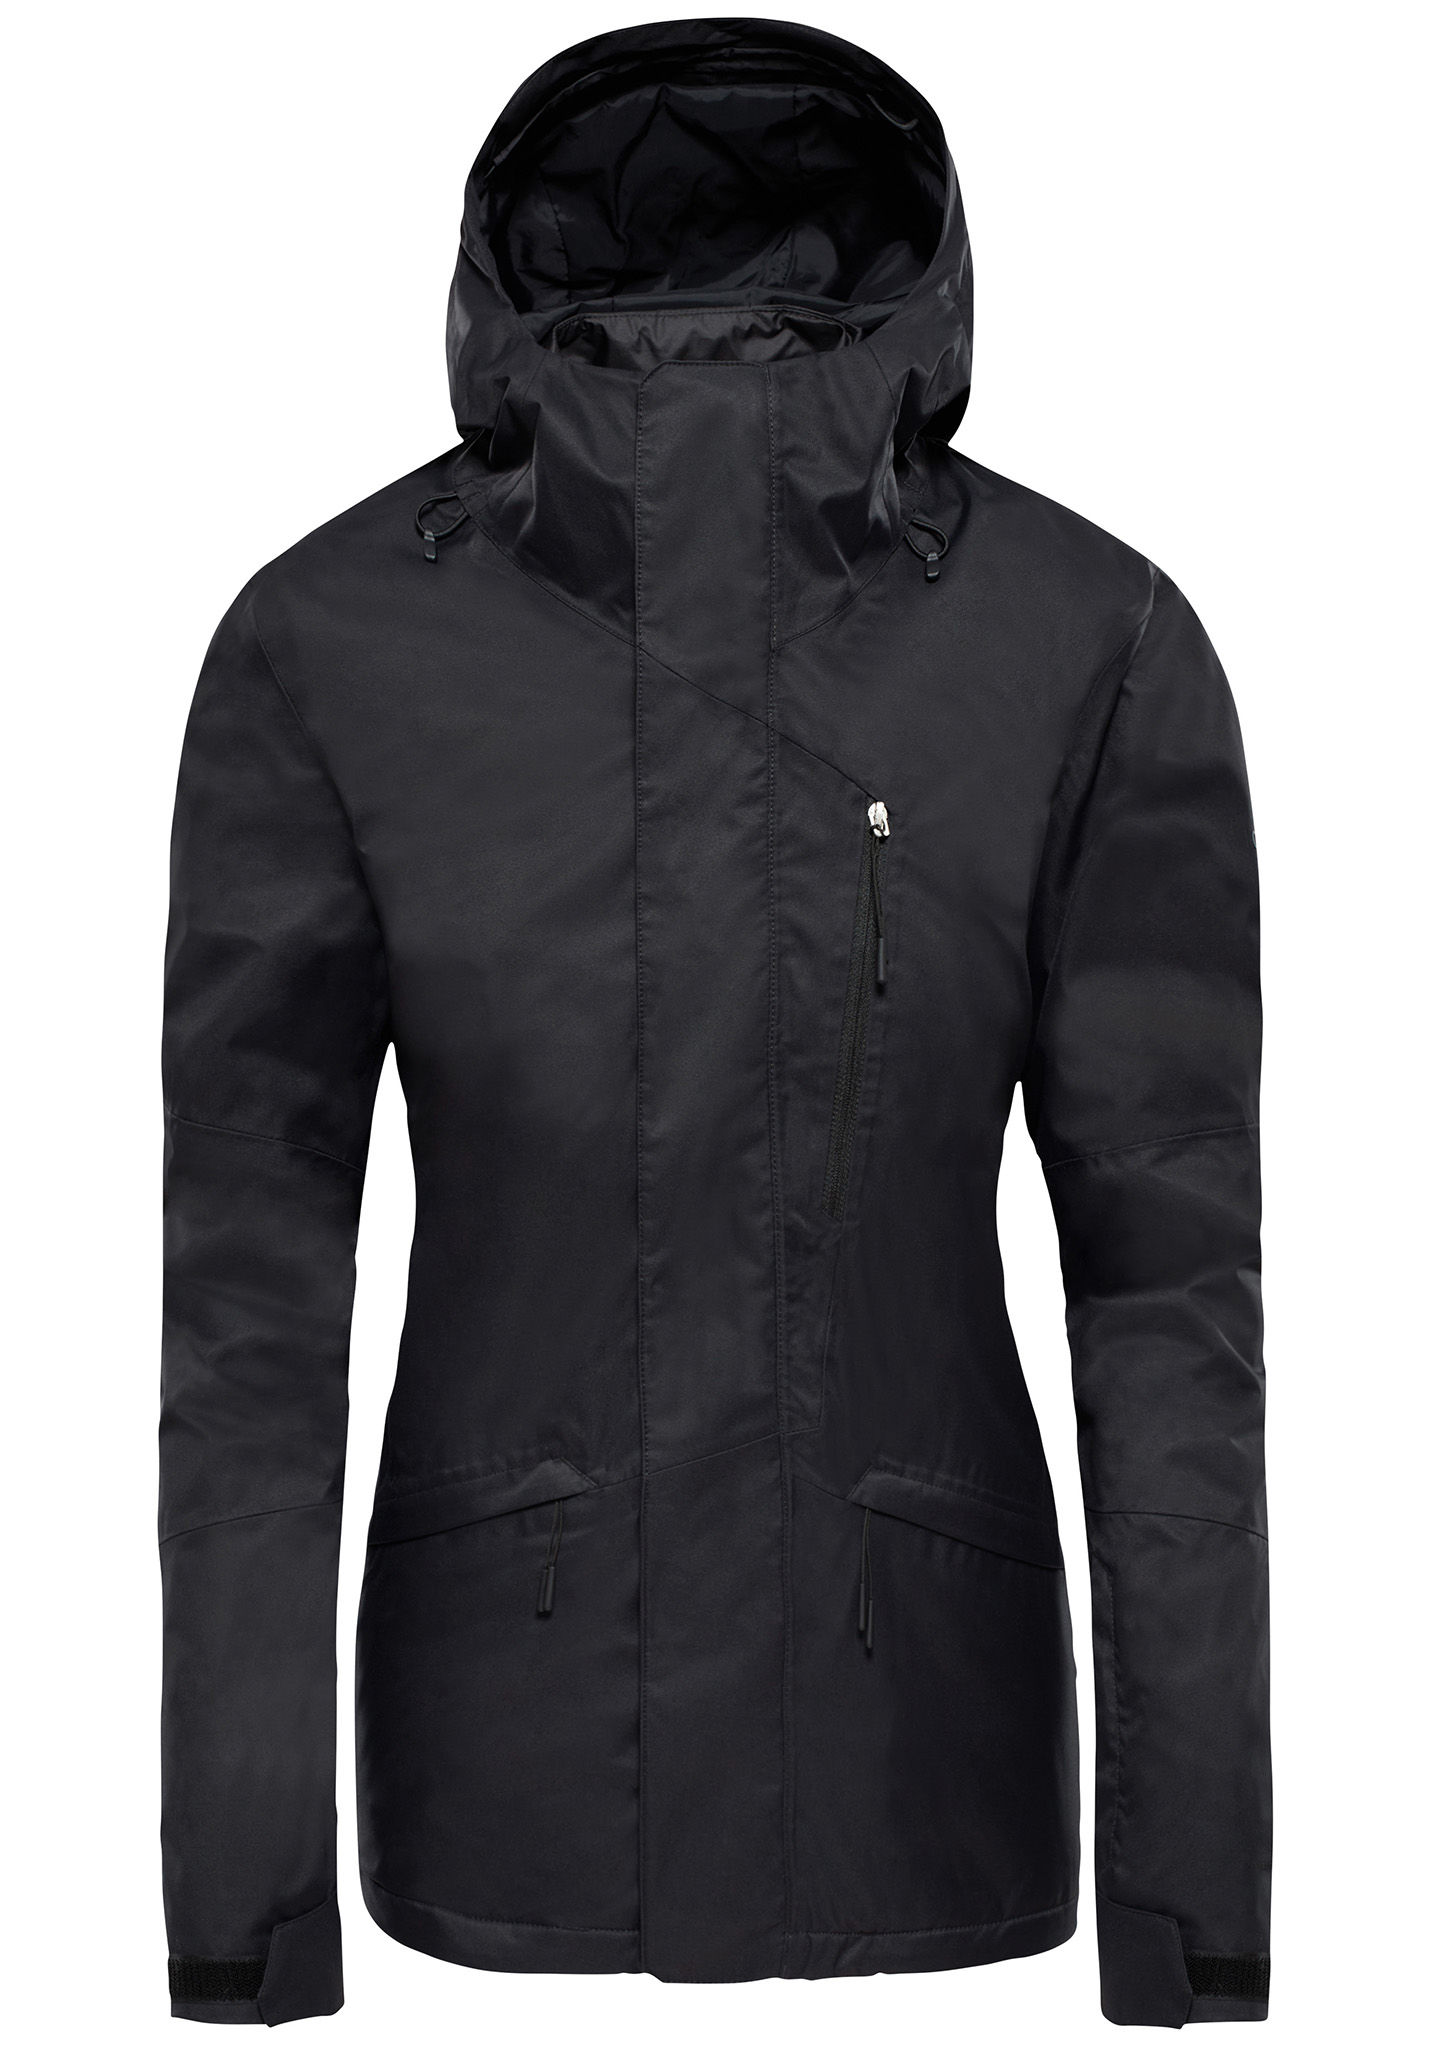 7033db2545 THE NORTH FACE Thermoball Snow Triclimate - Ski Jacket for Women - Black -  Planet Sports